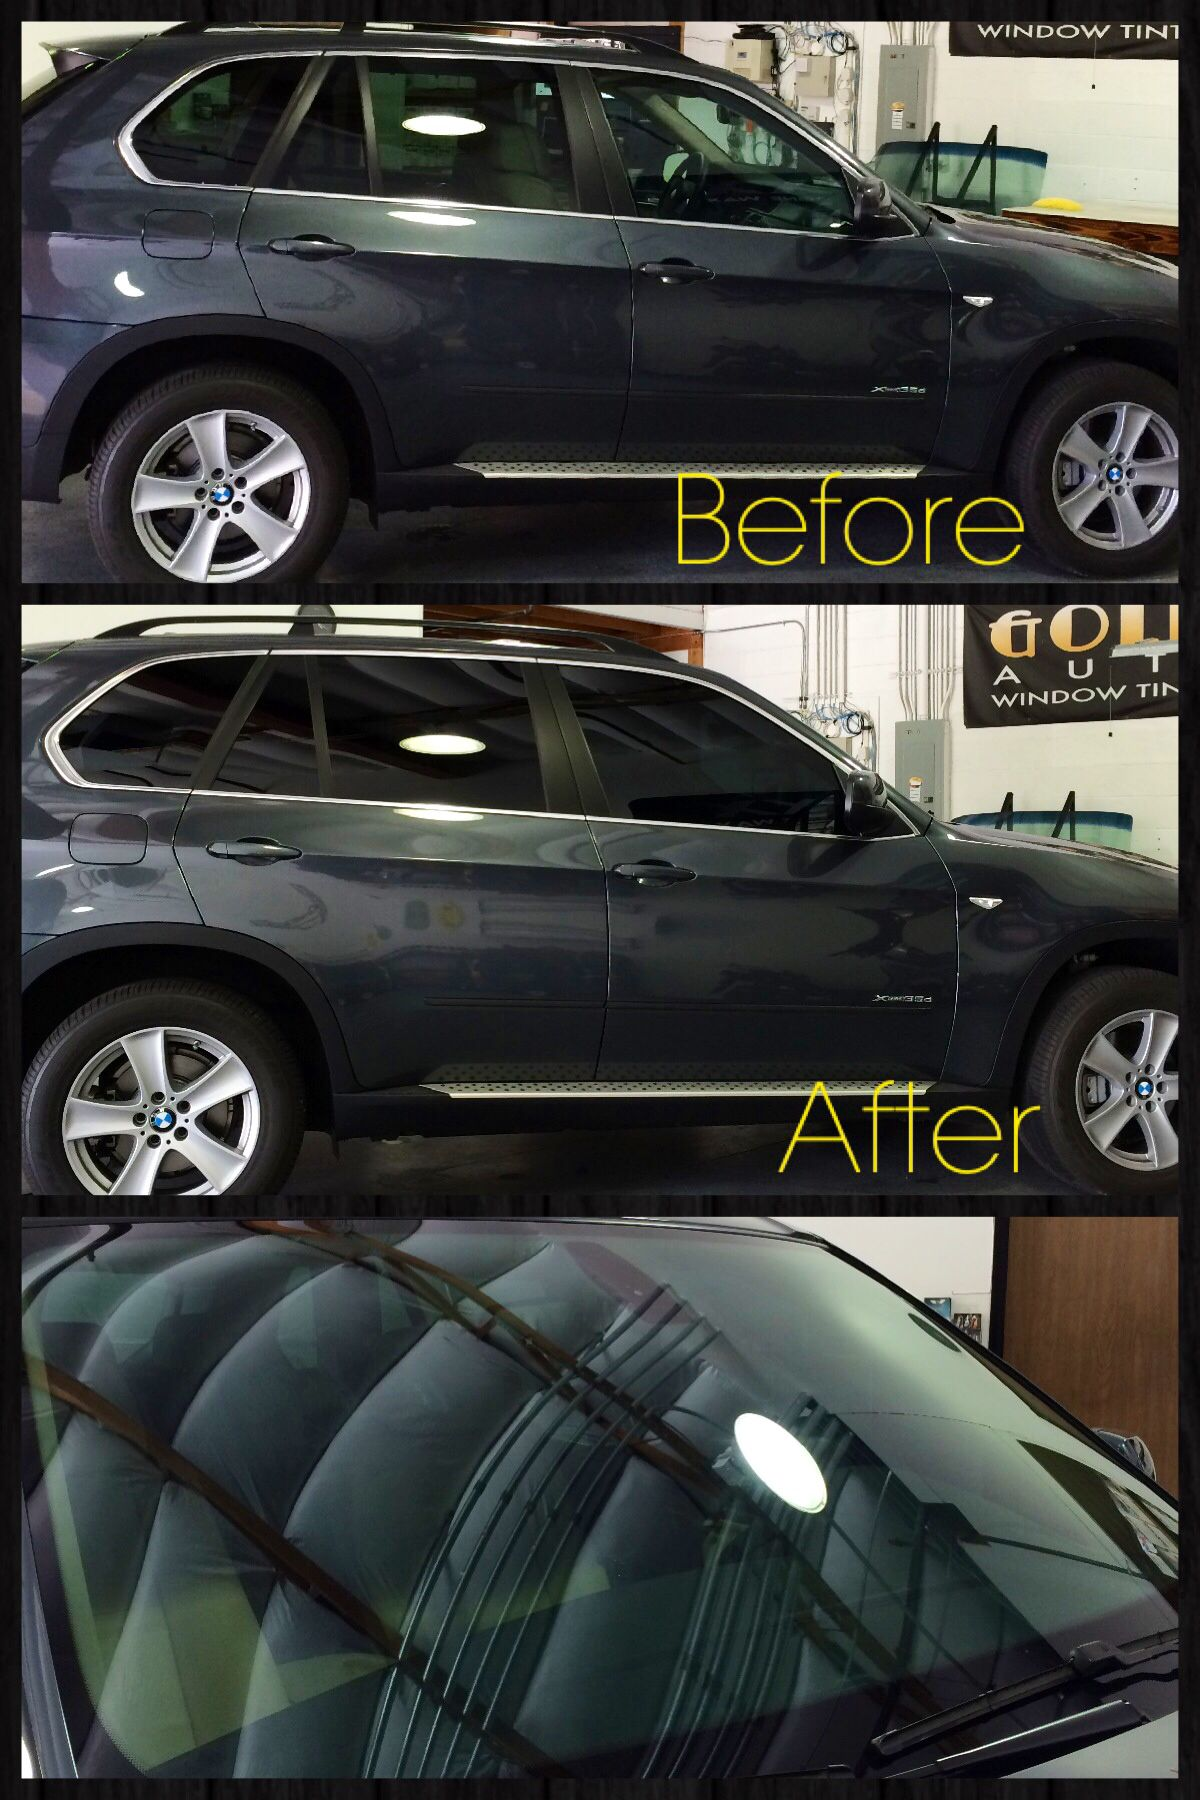 This 2013 bmw x5 found golden state auto care for window tint needs we